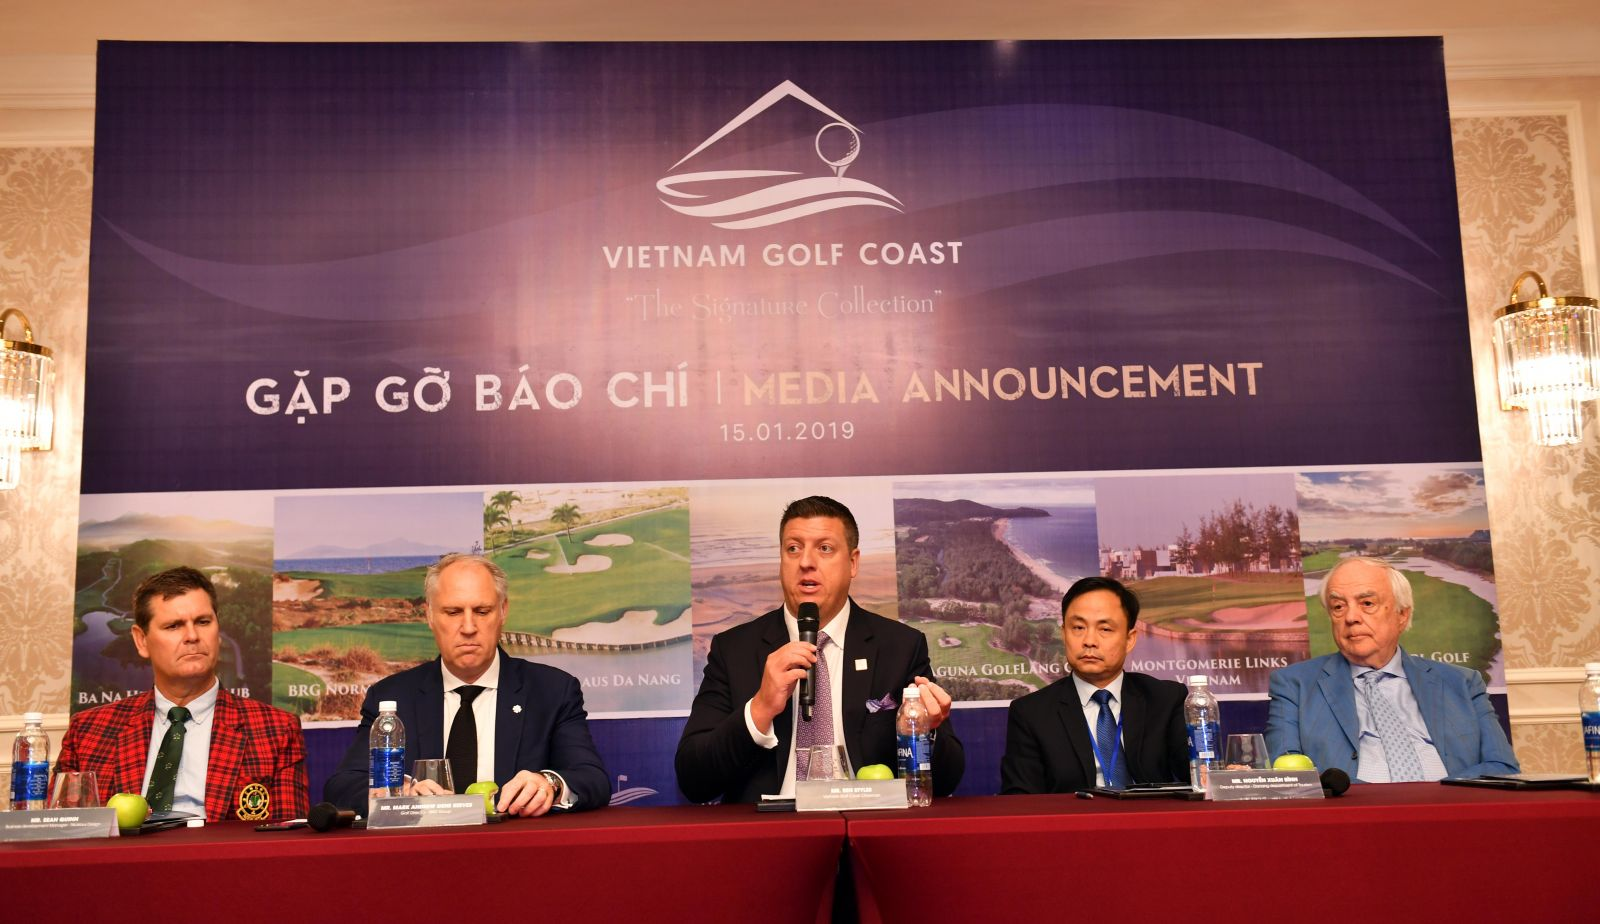 'Vietnam Golf Coast' Forms to Create Unique Golf Destination